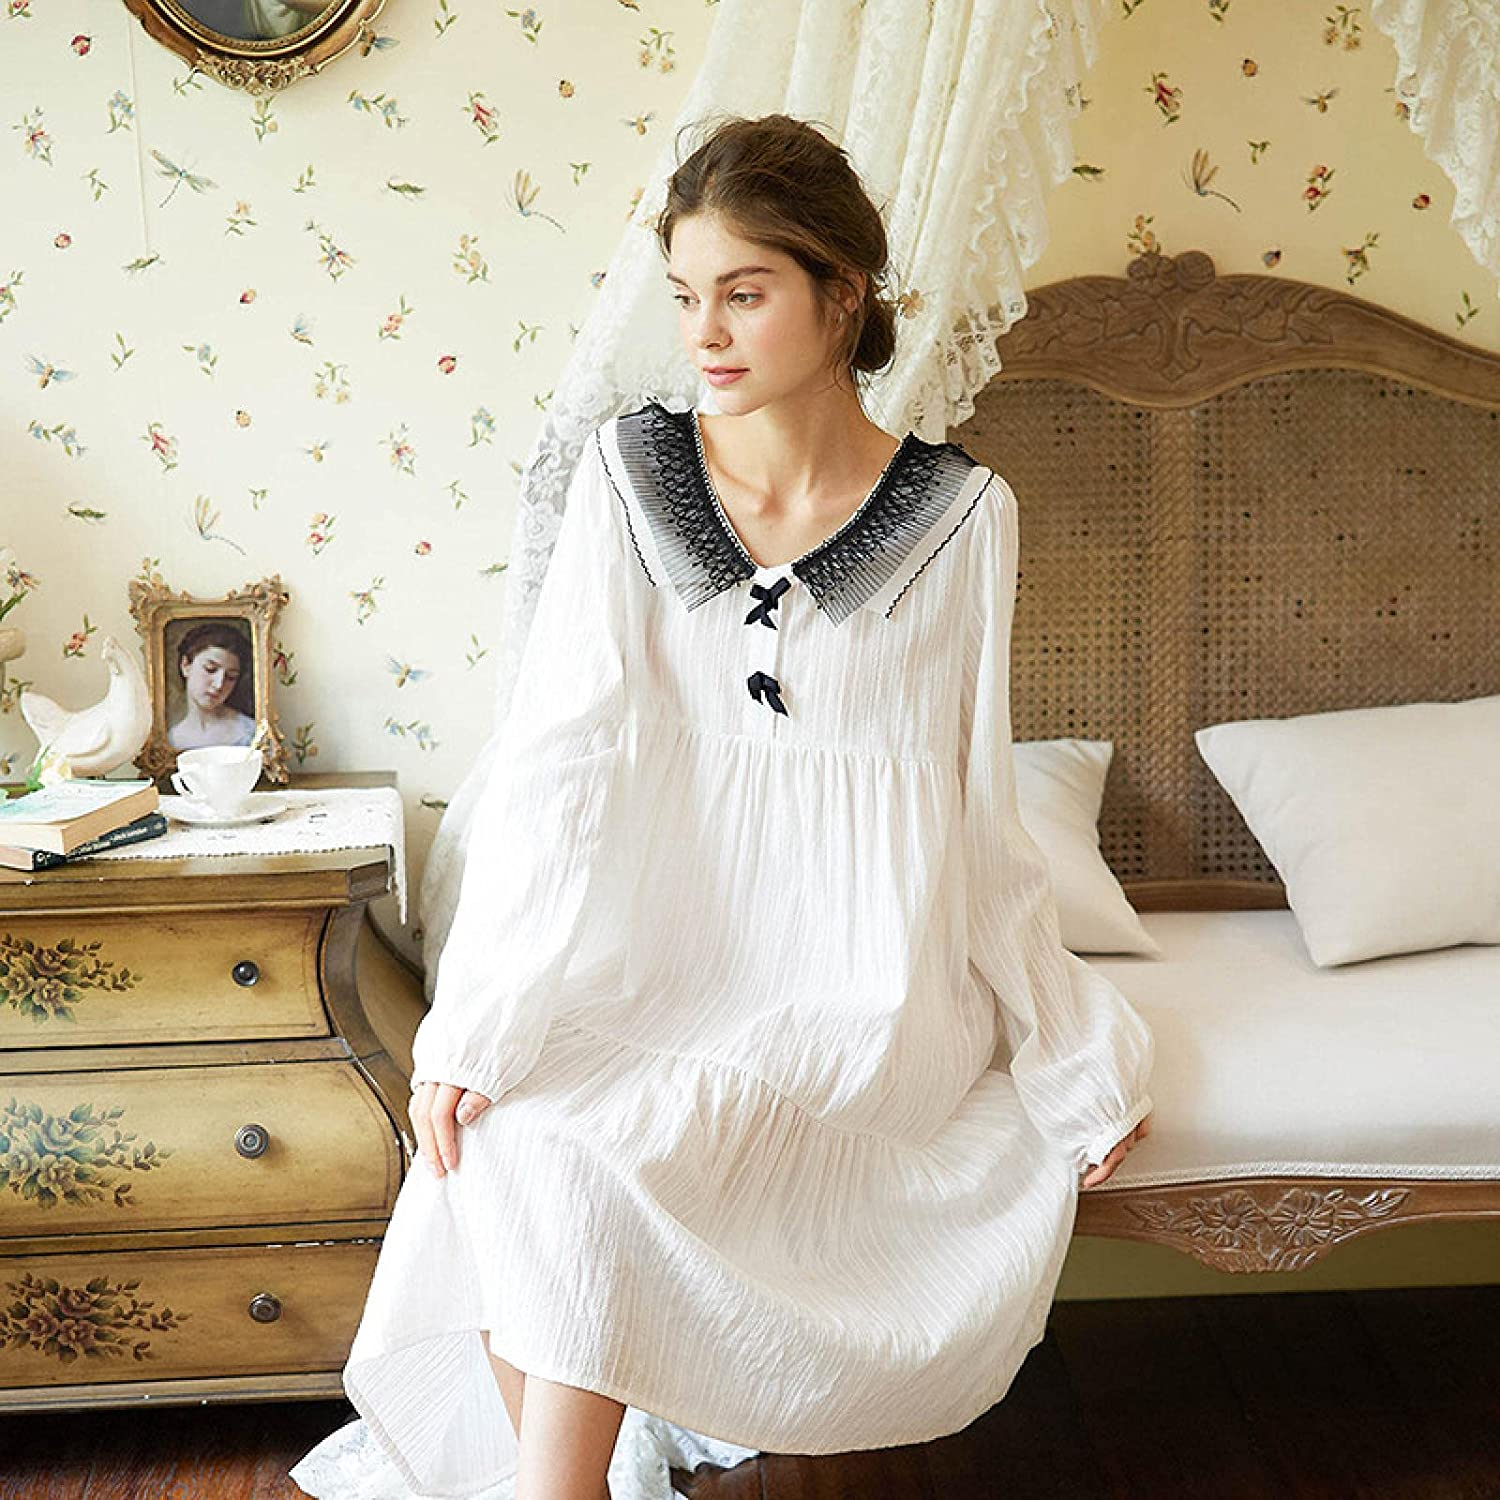 STJDM Nightgown Cotton Sale price Vintage Women Sl Sleeve Long French Style Colorado Springs Mall